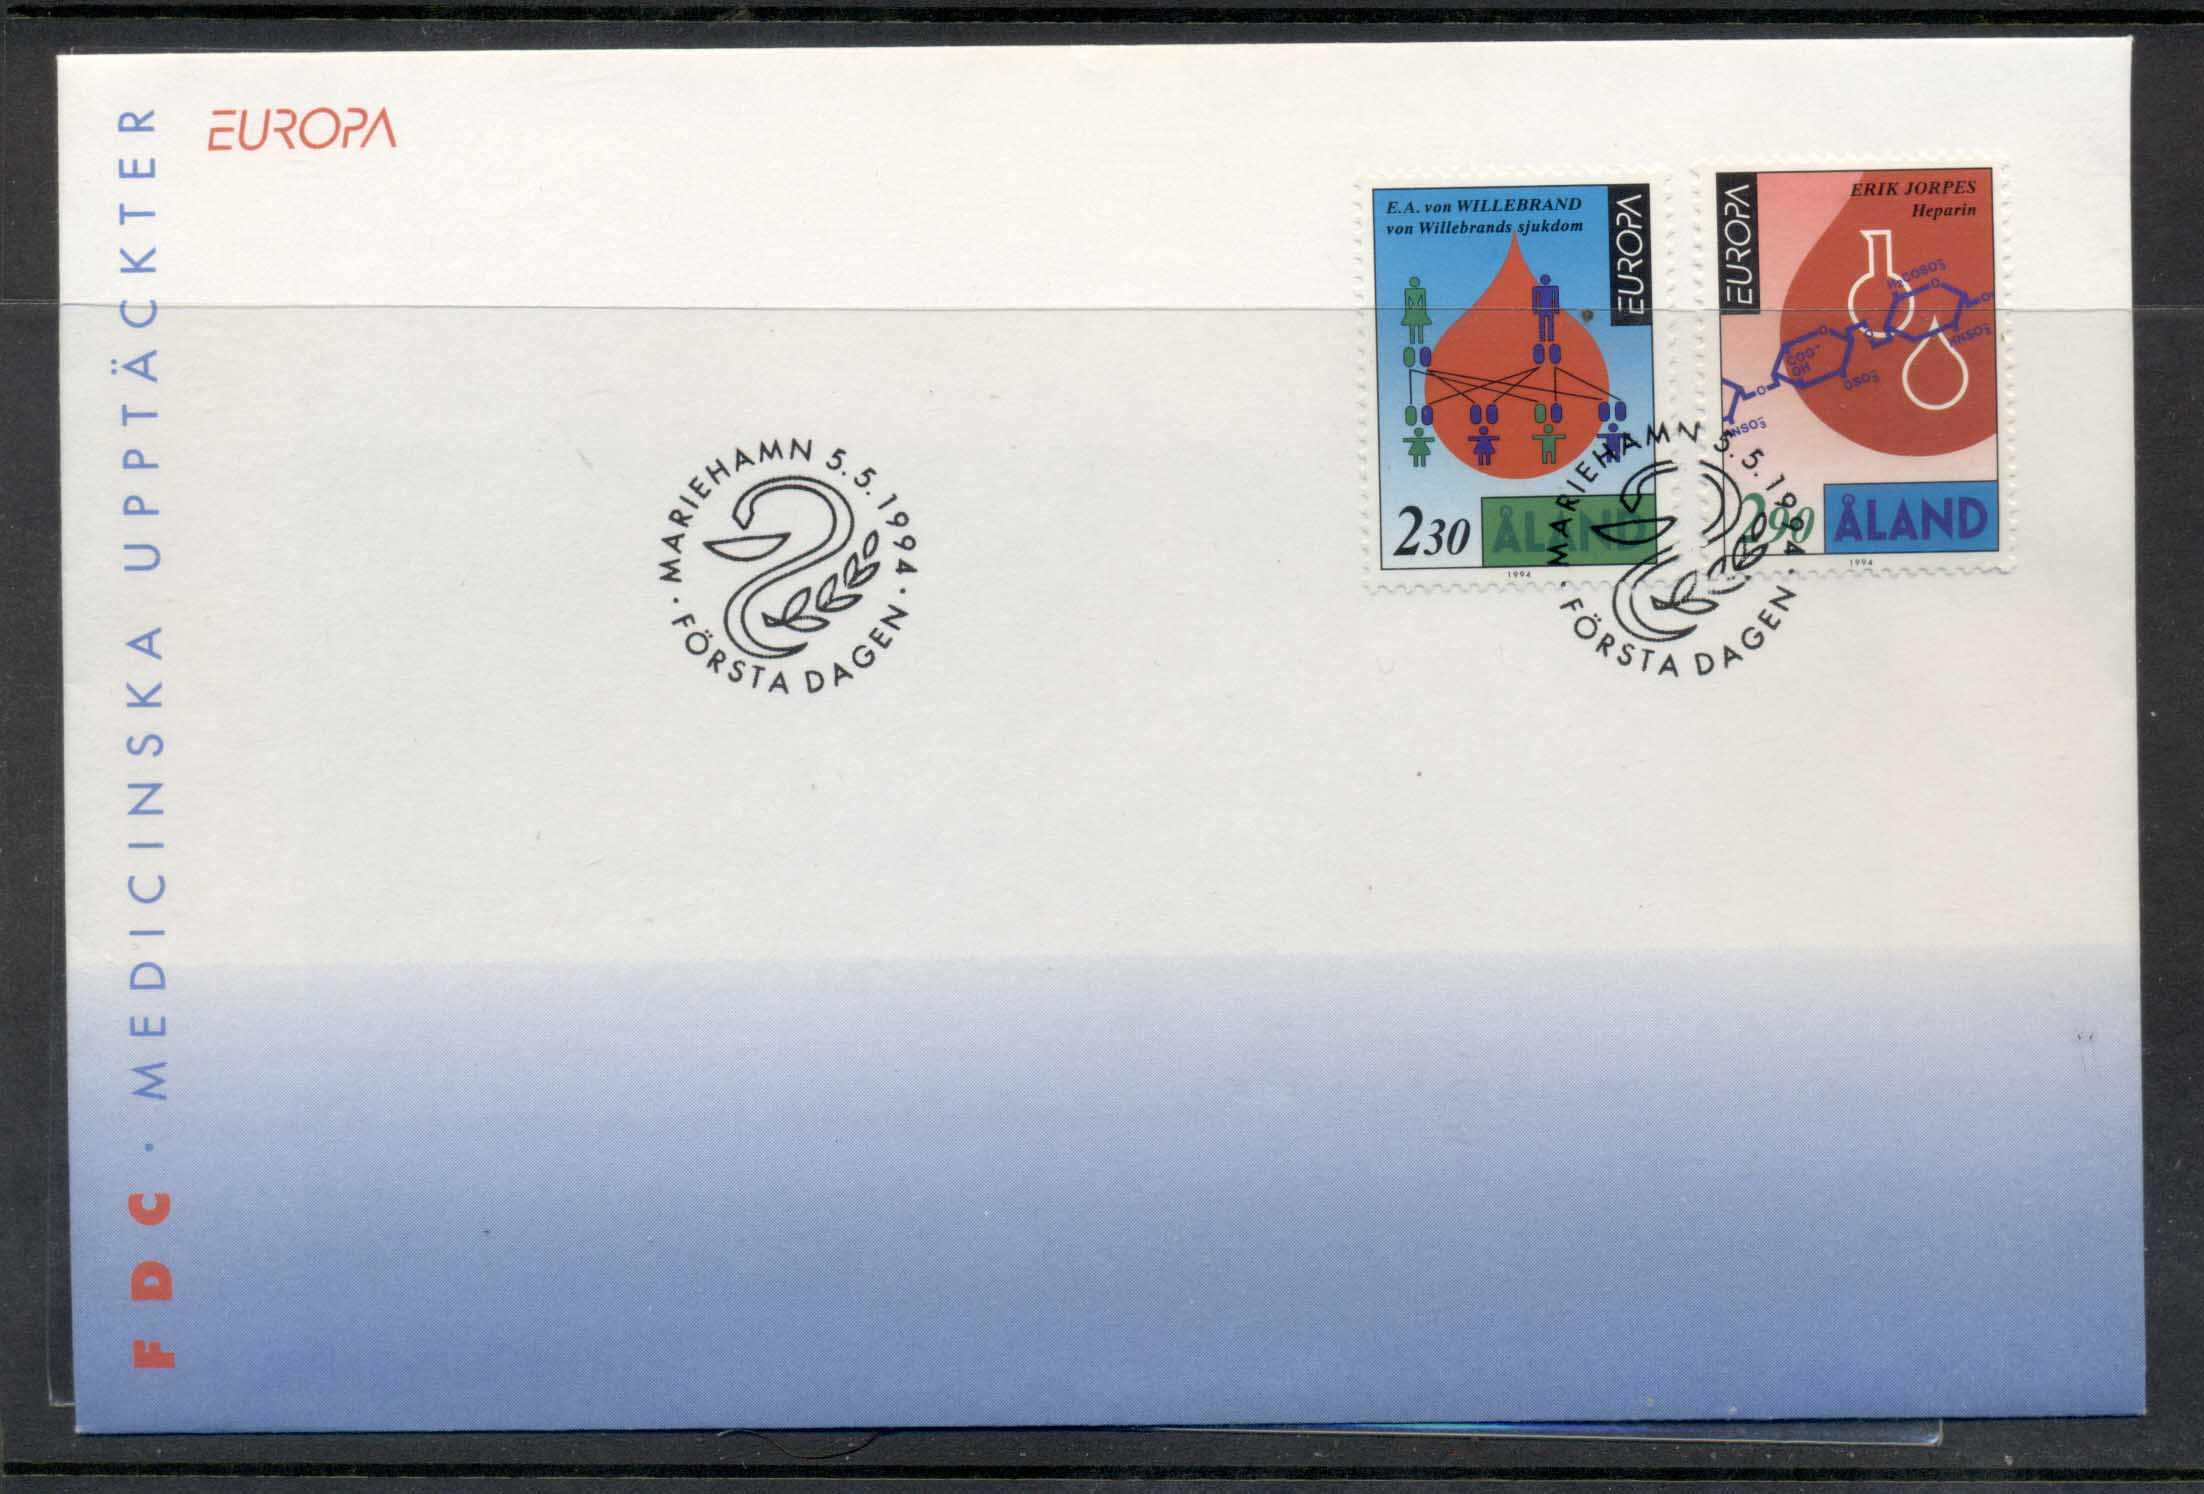 Aland 1994 Europa Scientific Discoveries FDC